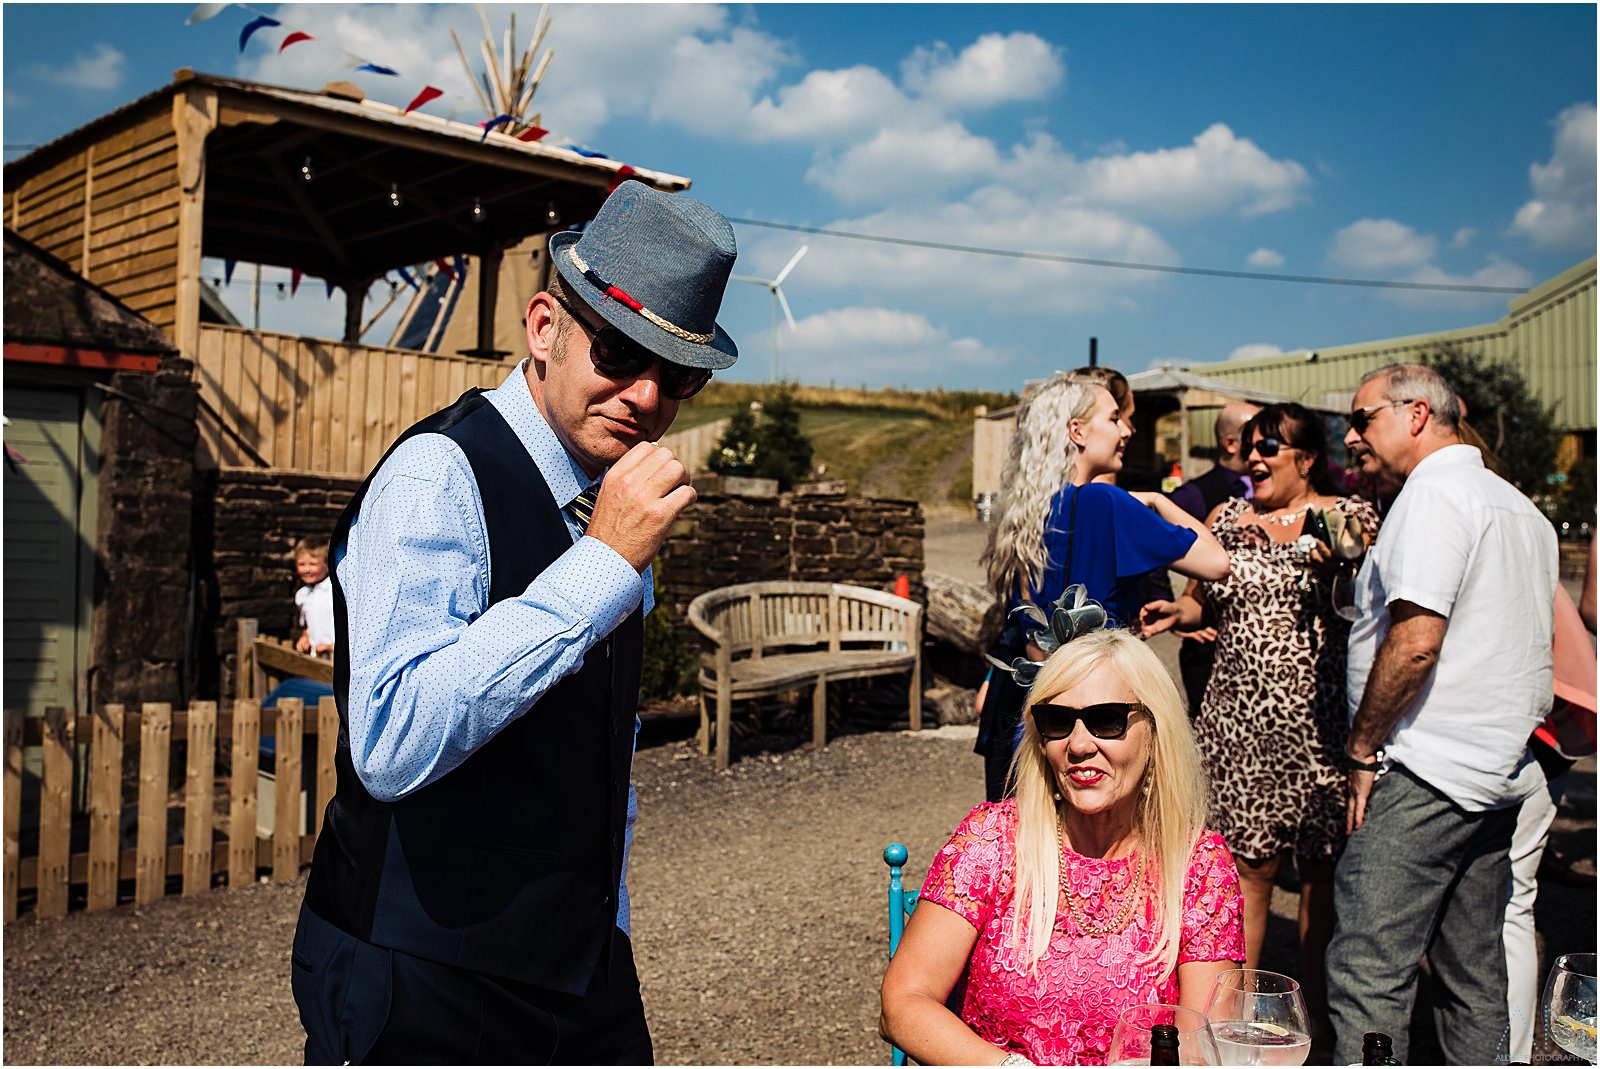 Wedding guest wearing a funny hat